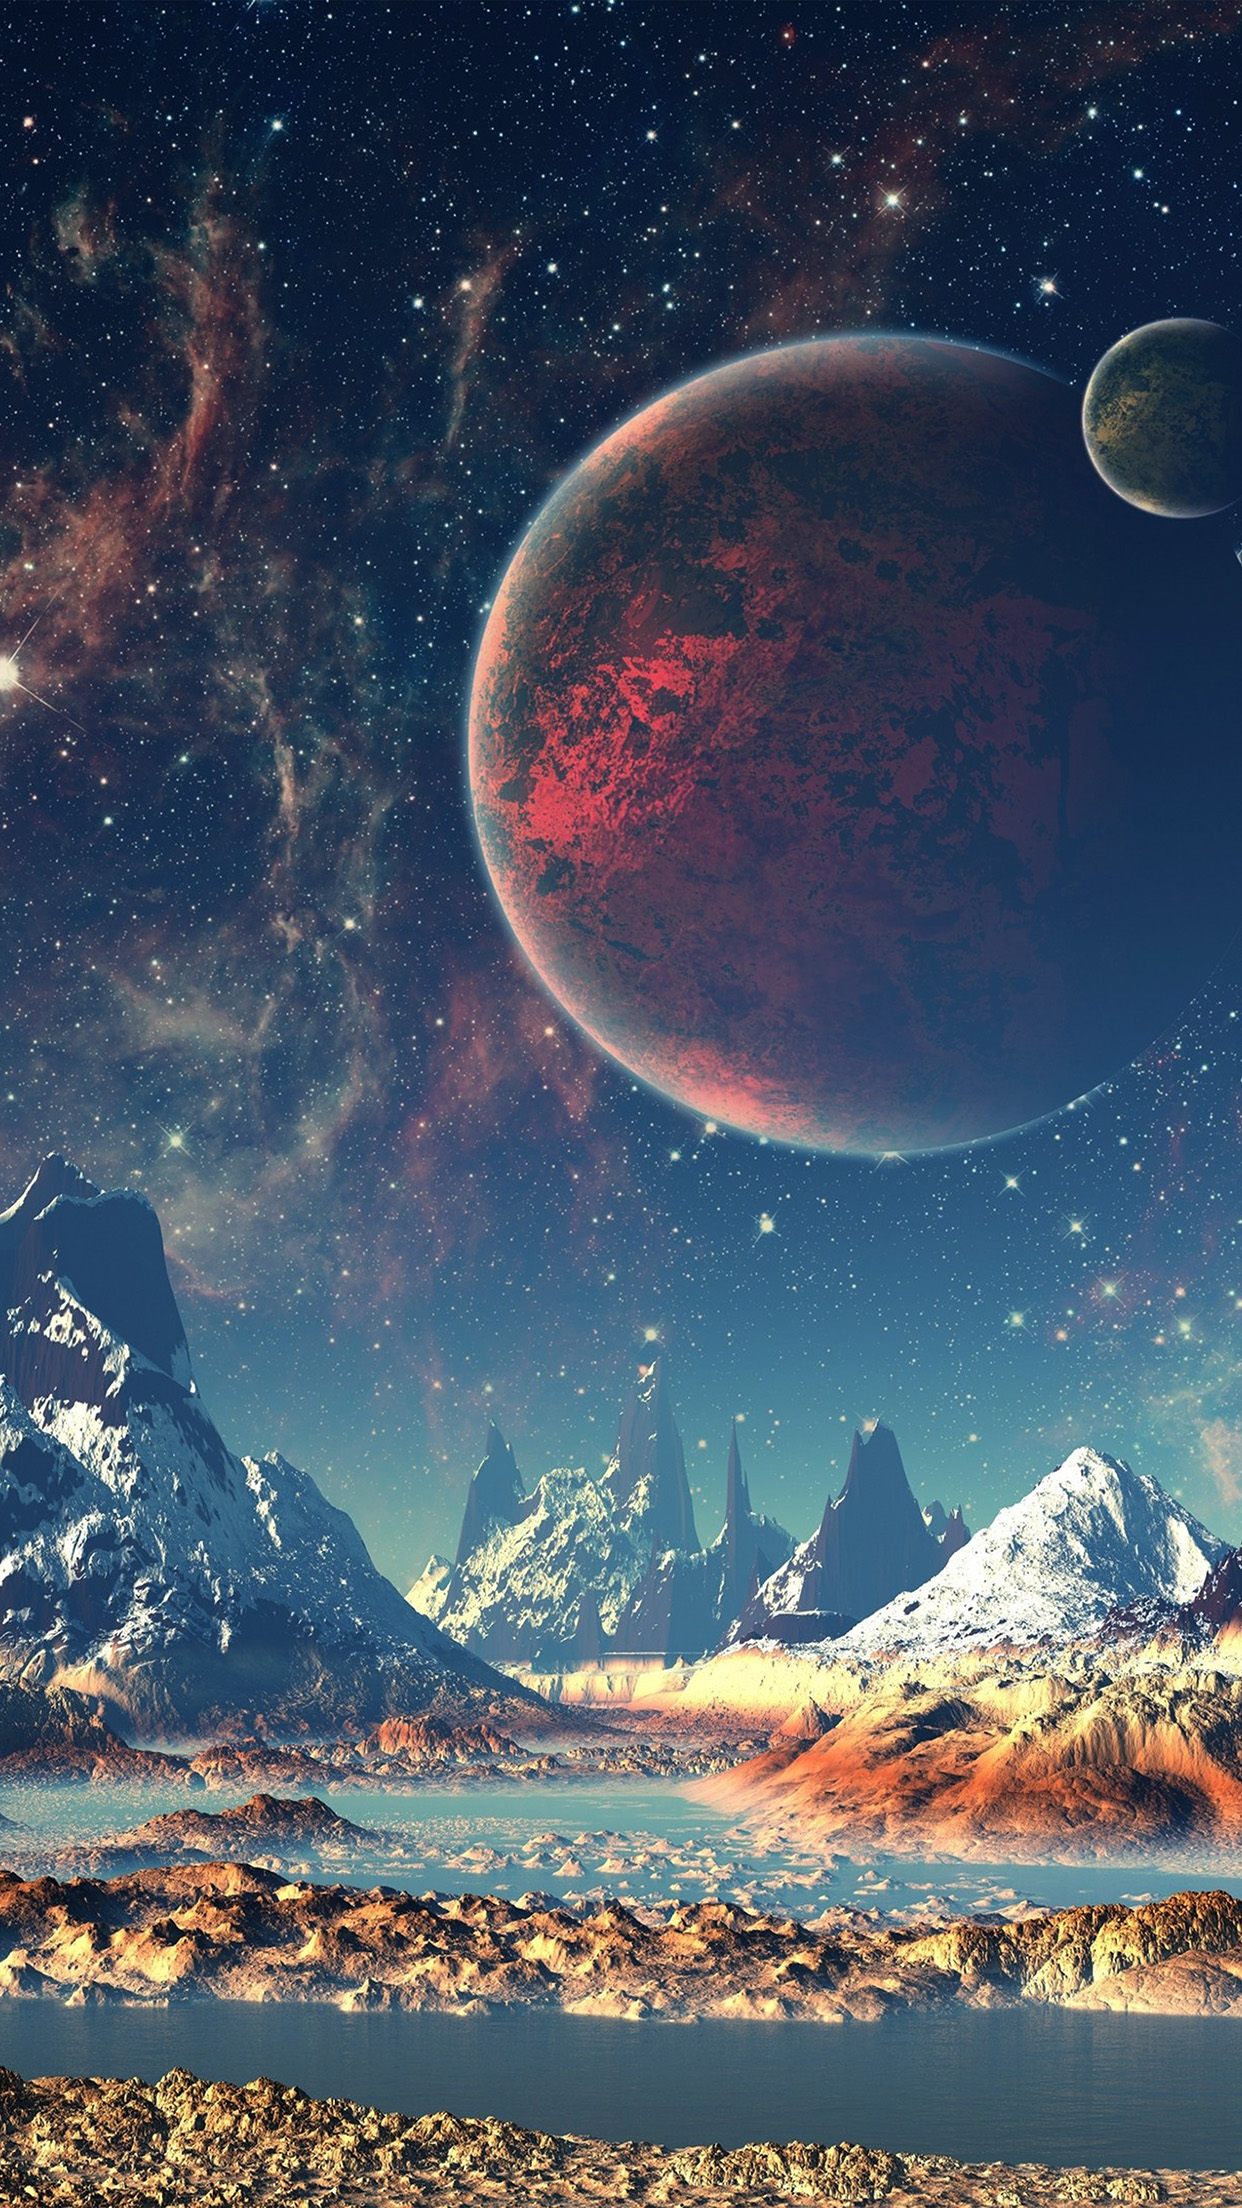 dream space world mountain sky star illustration android wallpaper